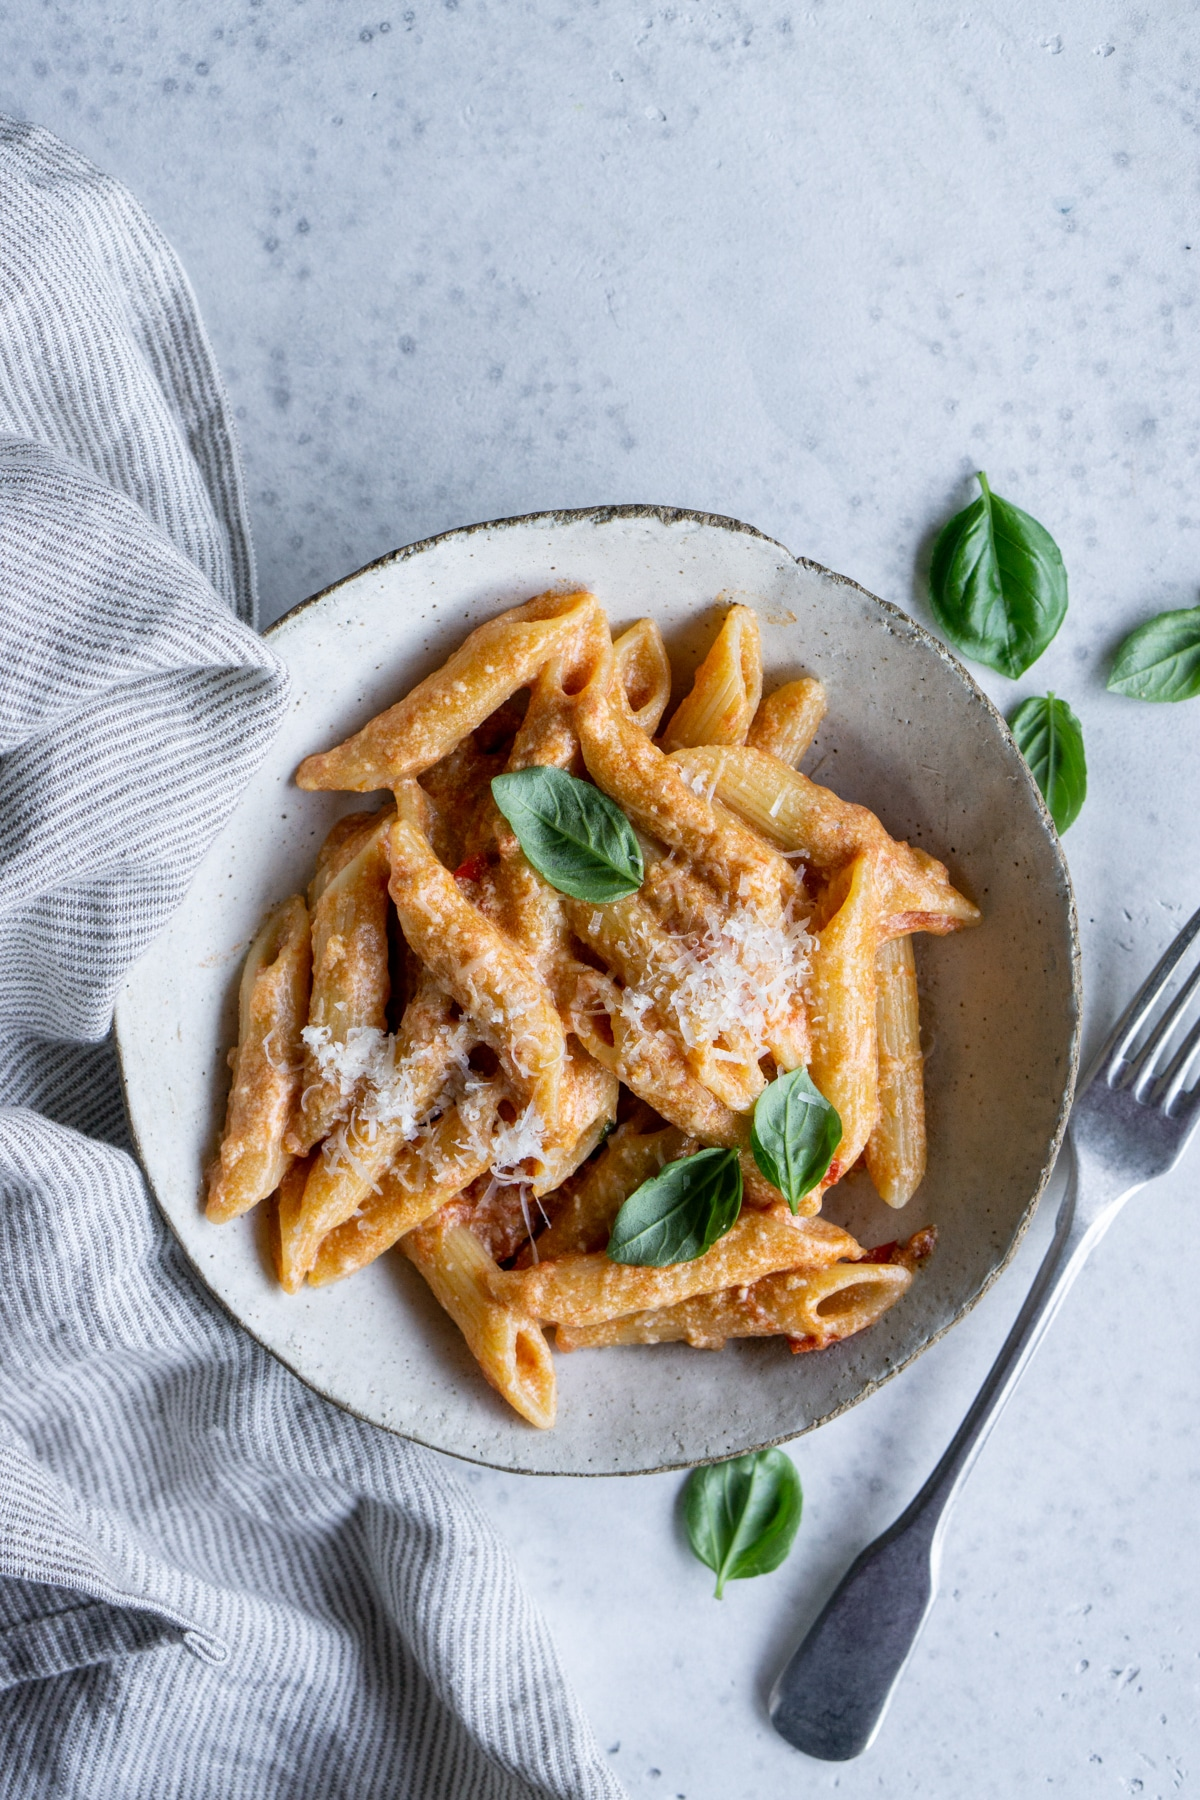 Ricotta pasta with tomato sauce in a bowl with a fork to the side